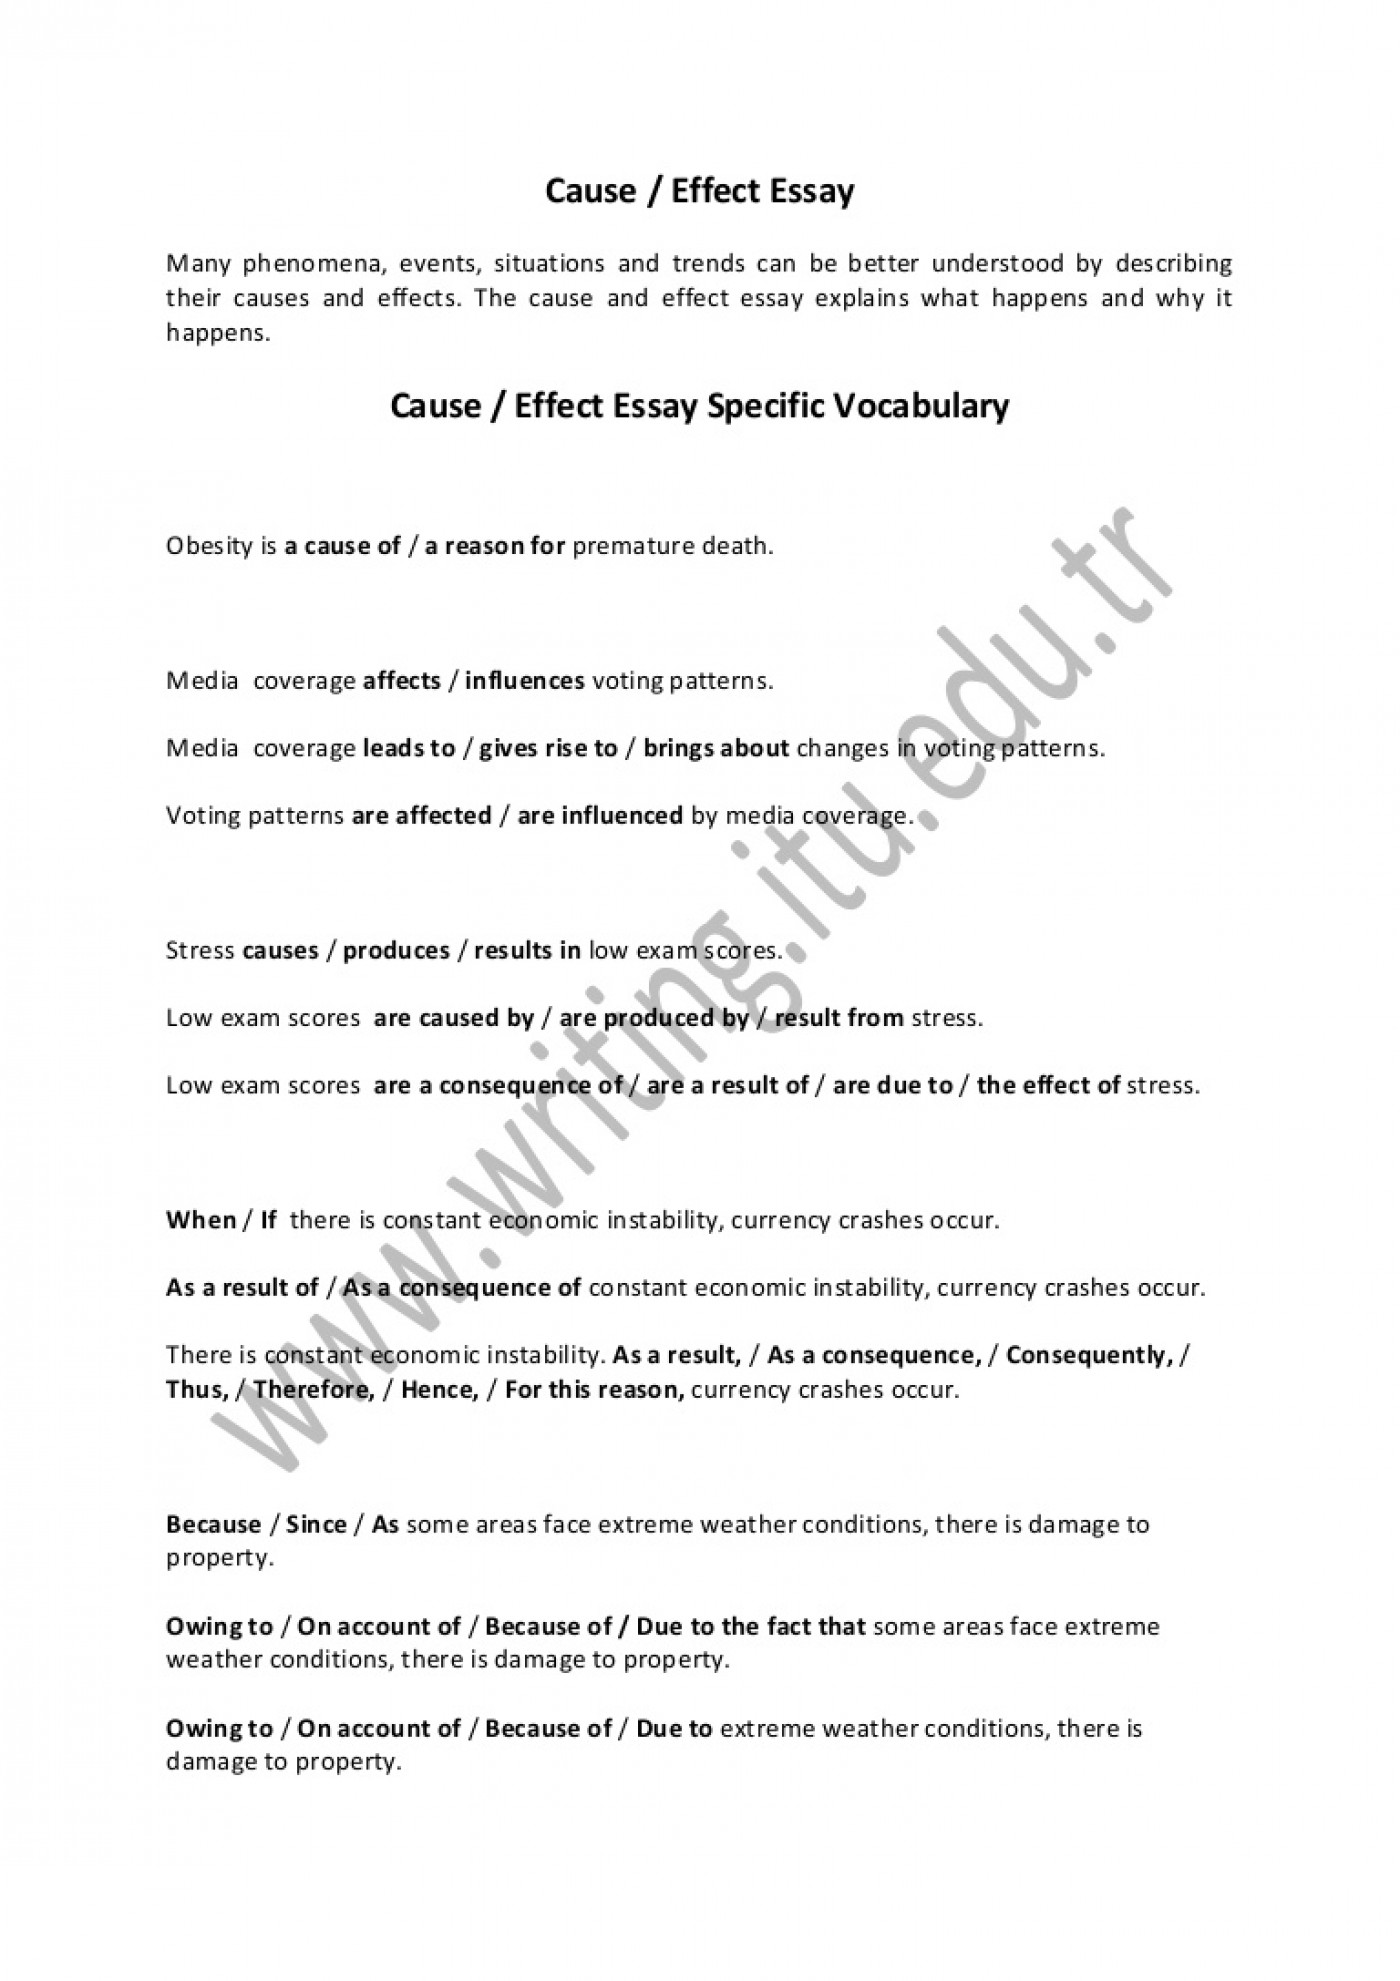 019 Essay Example Causeandeffectessay Thumbnail Cause And Effect Amazing Examples On Stress Pdf 1400